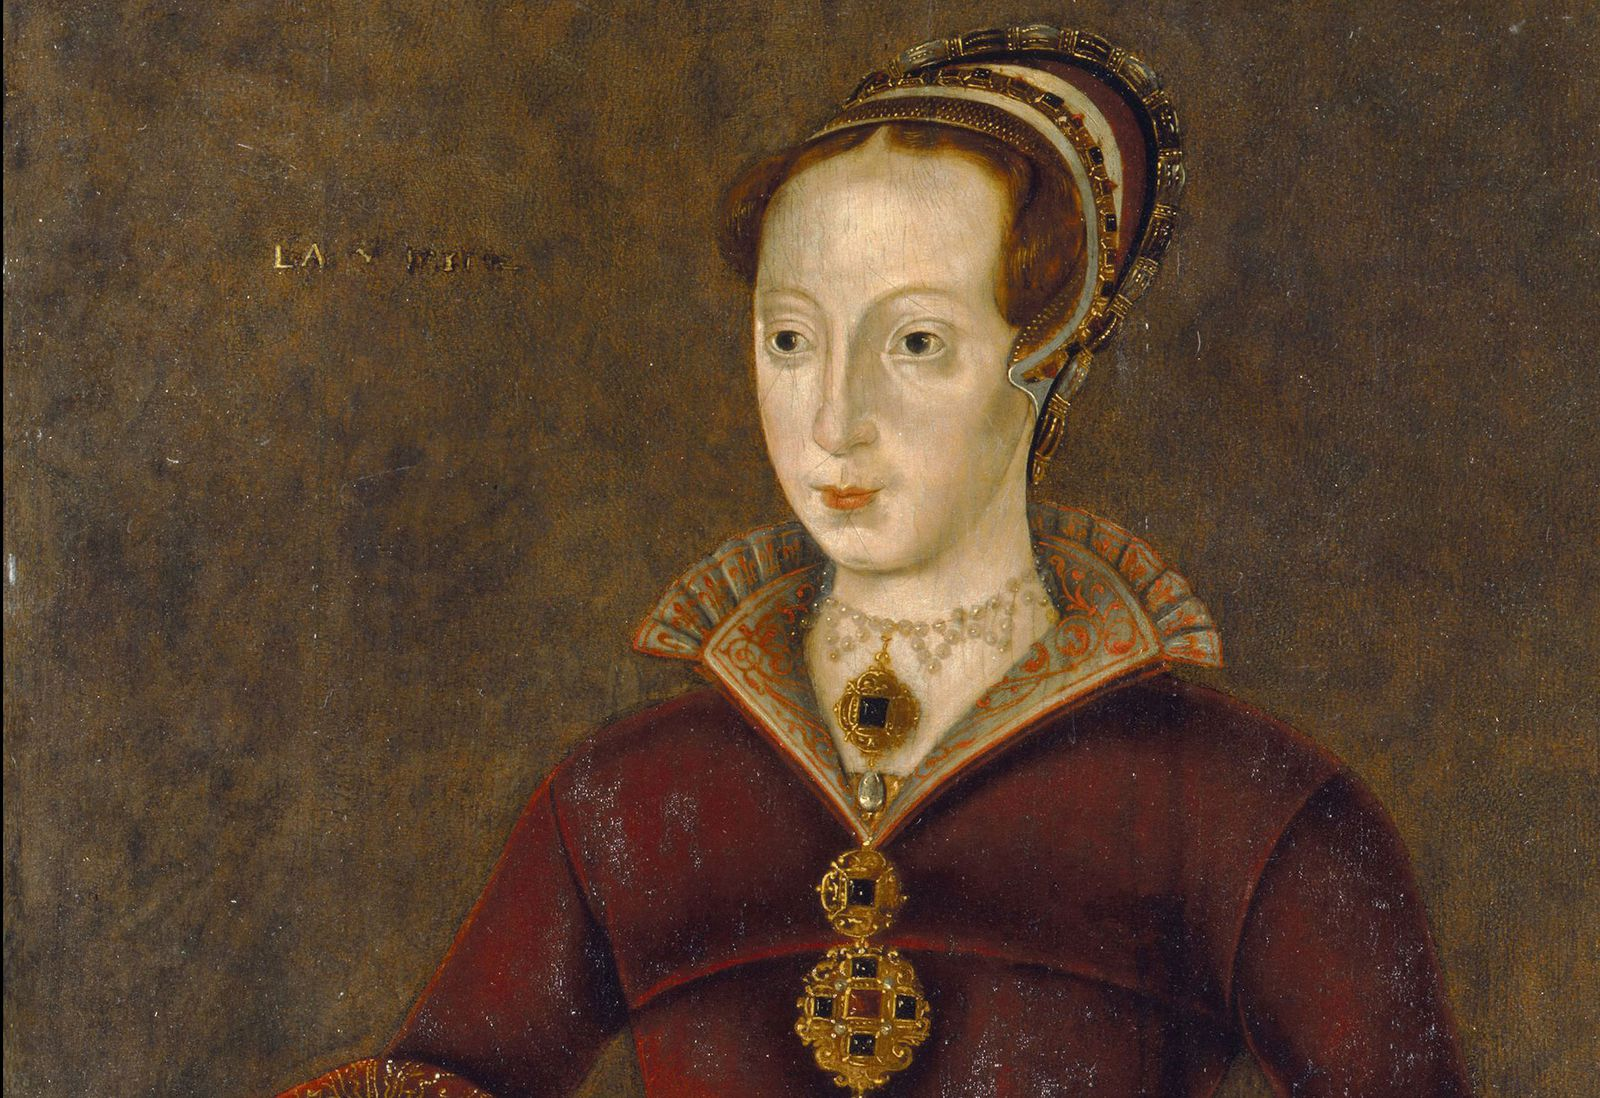 The Tragic Story of England's Nine-Day Queen | Smart News | Smithsonian